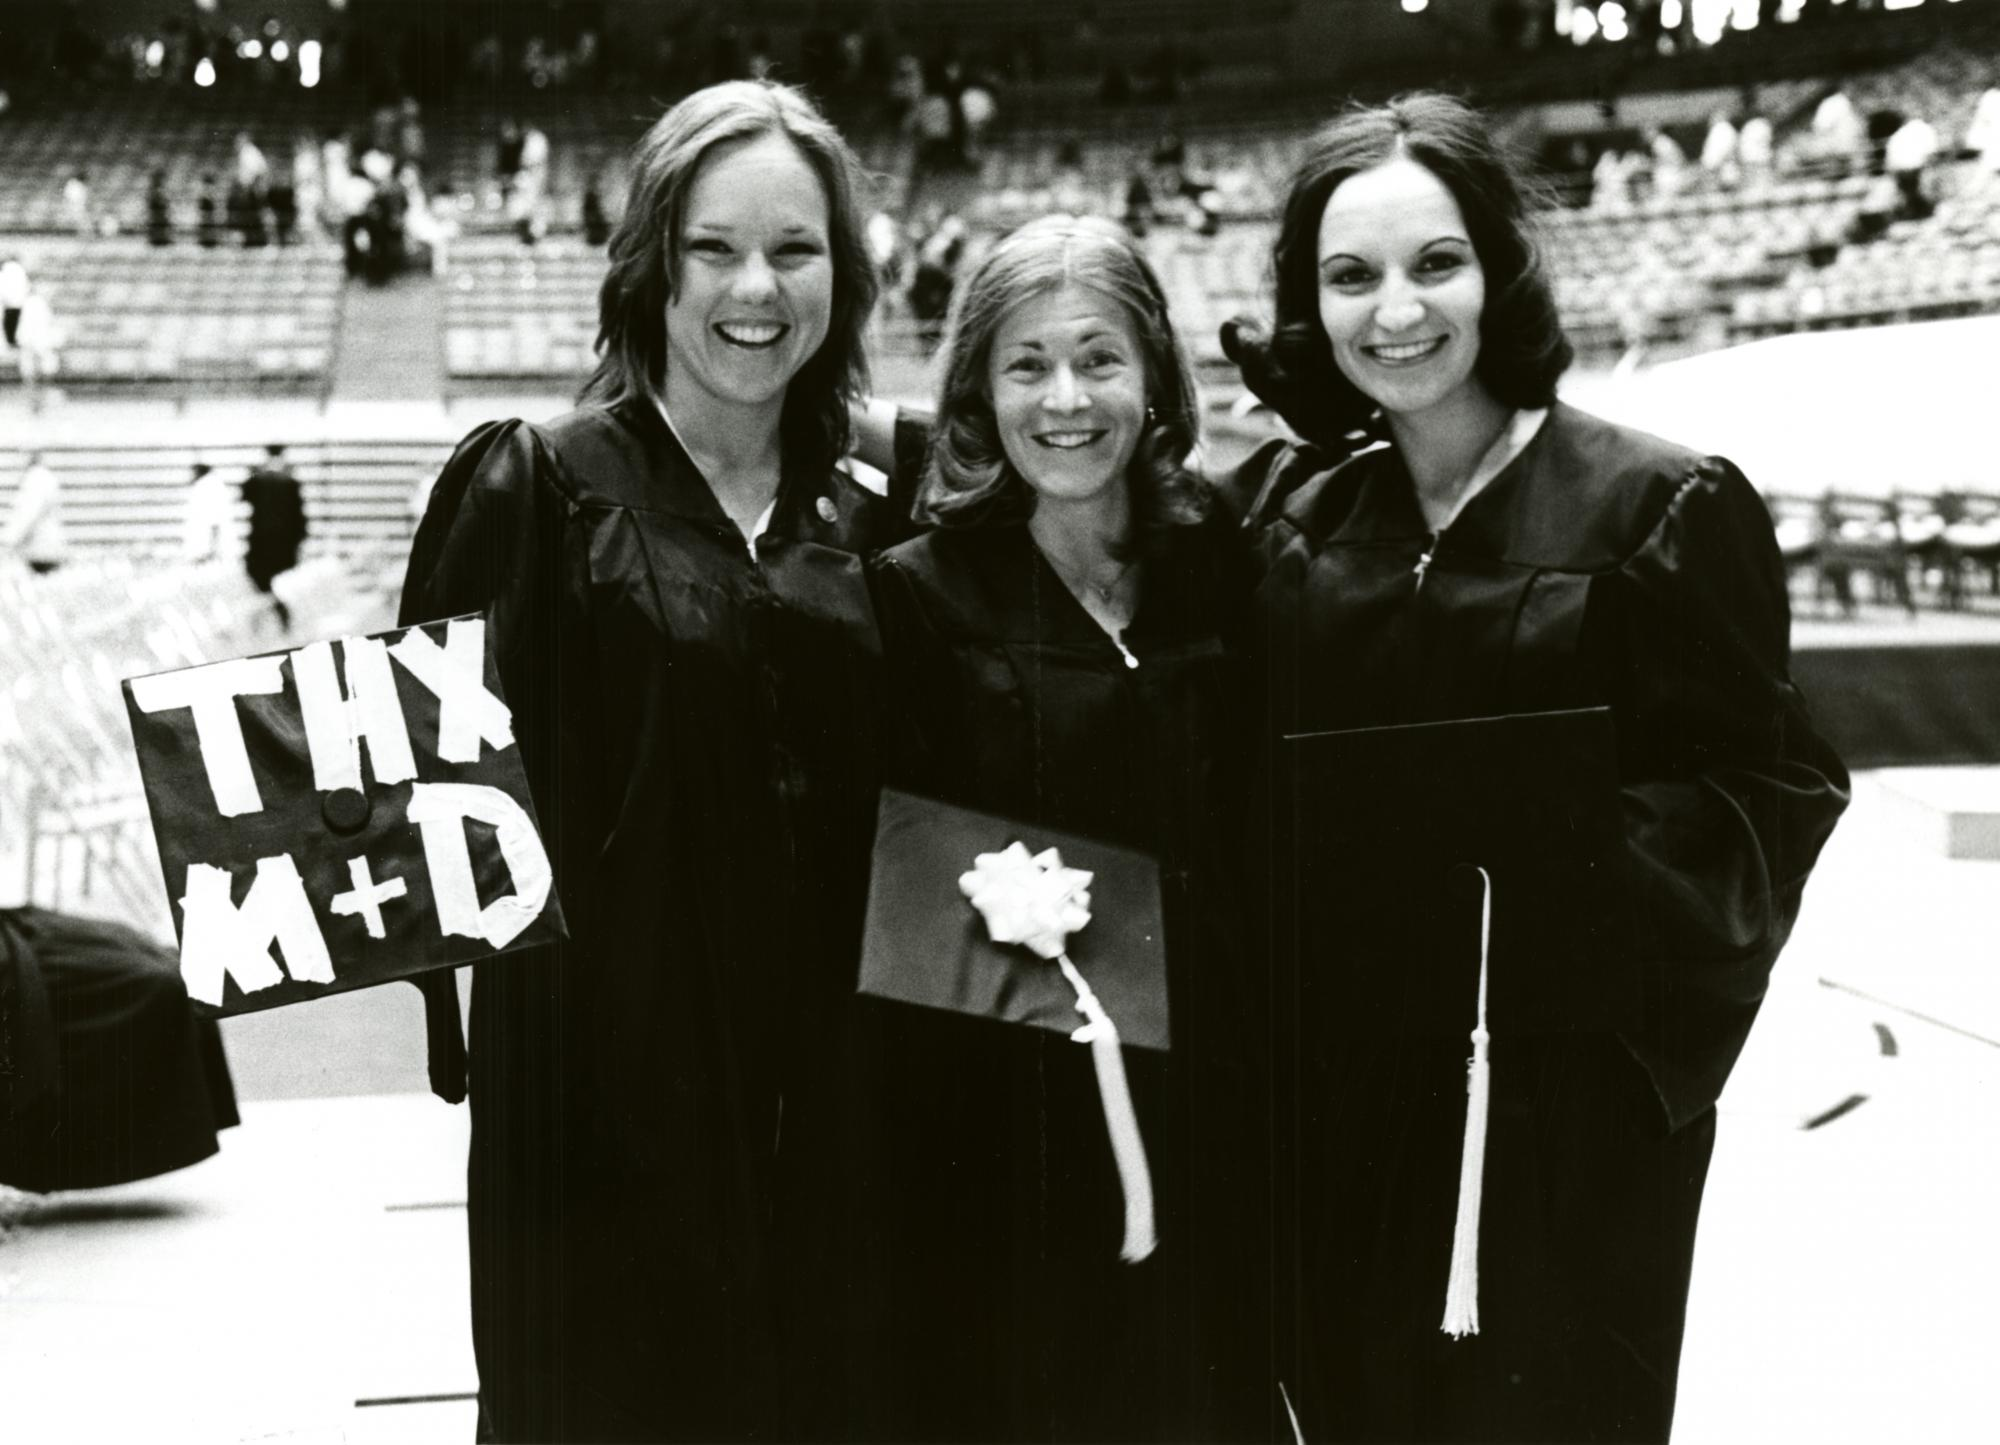 UA graduates celebrate Commencement in 1976. The tradition of adorning caps with personal messages began in the 1960s.